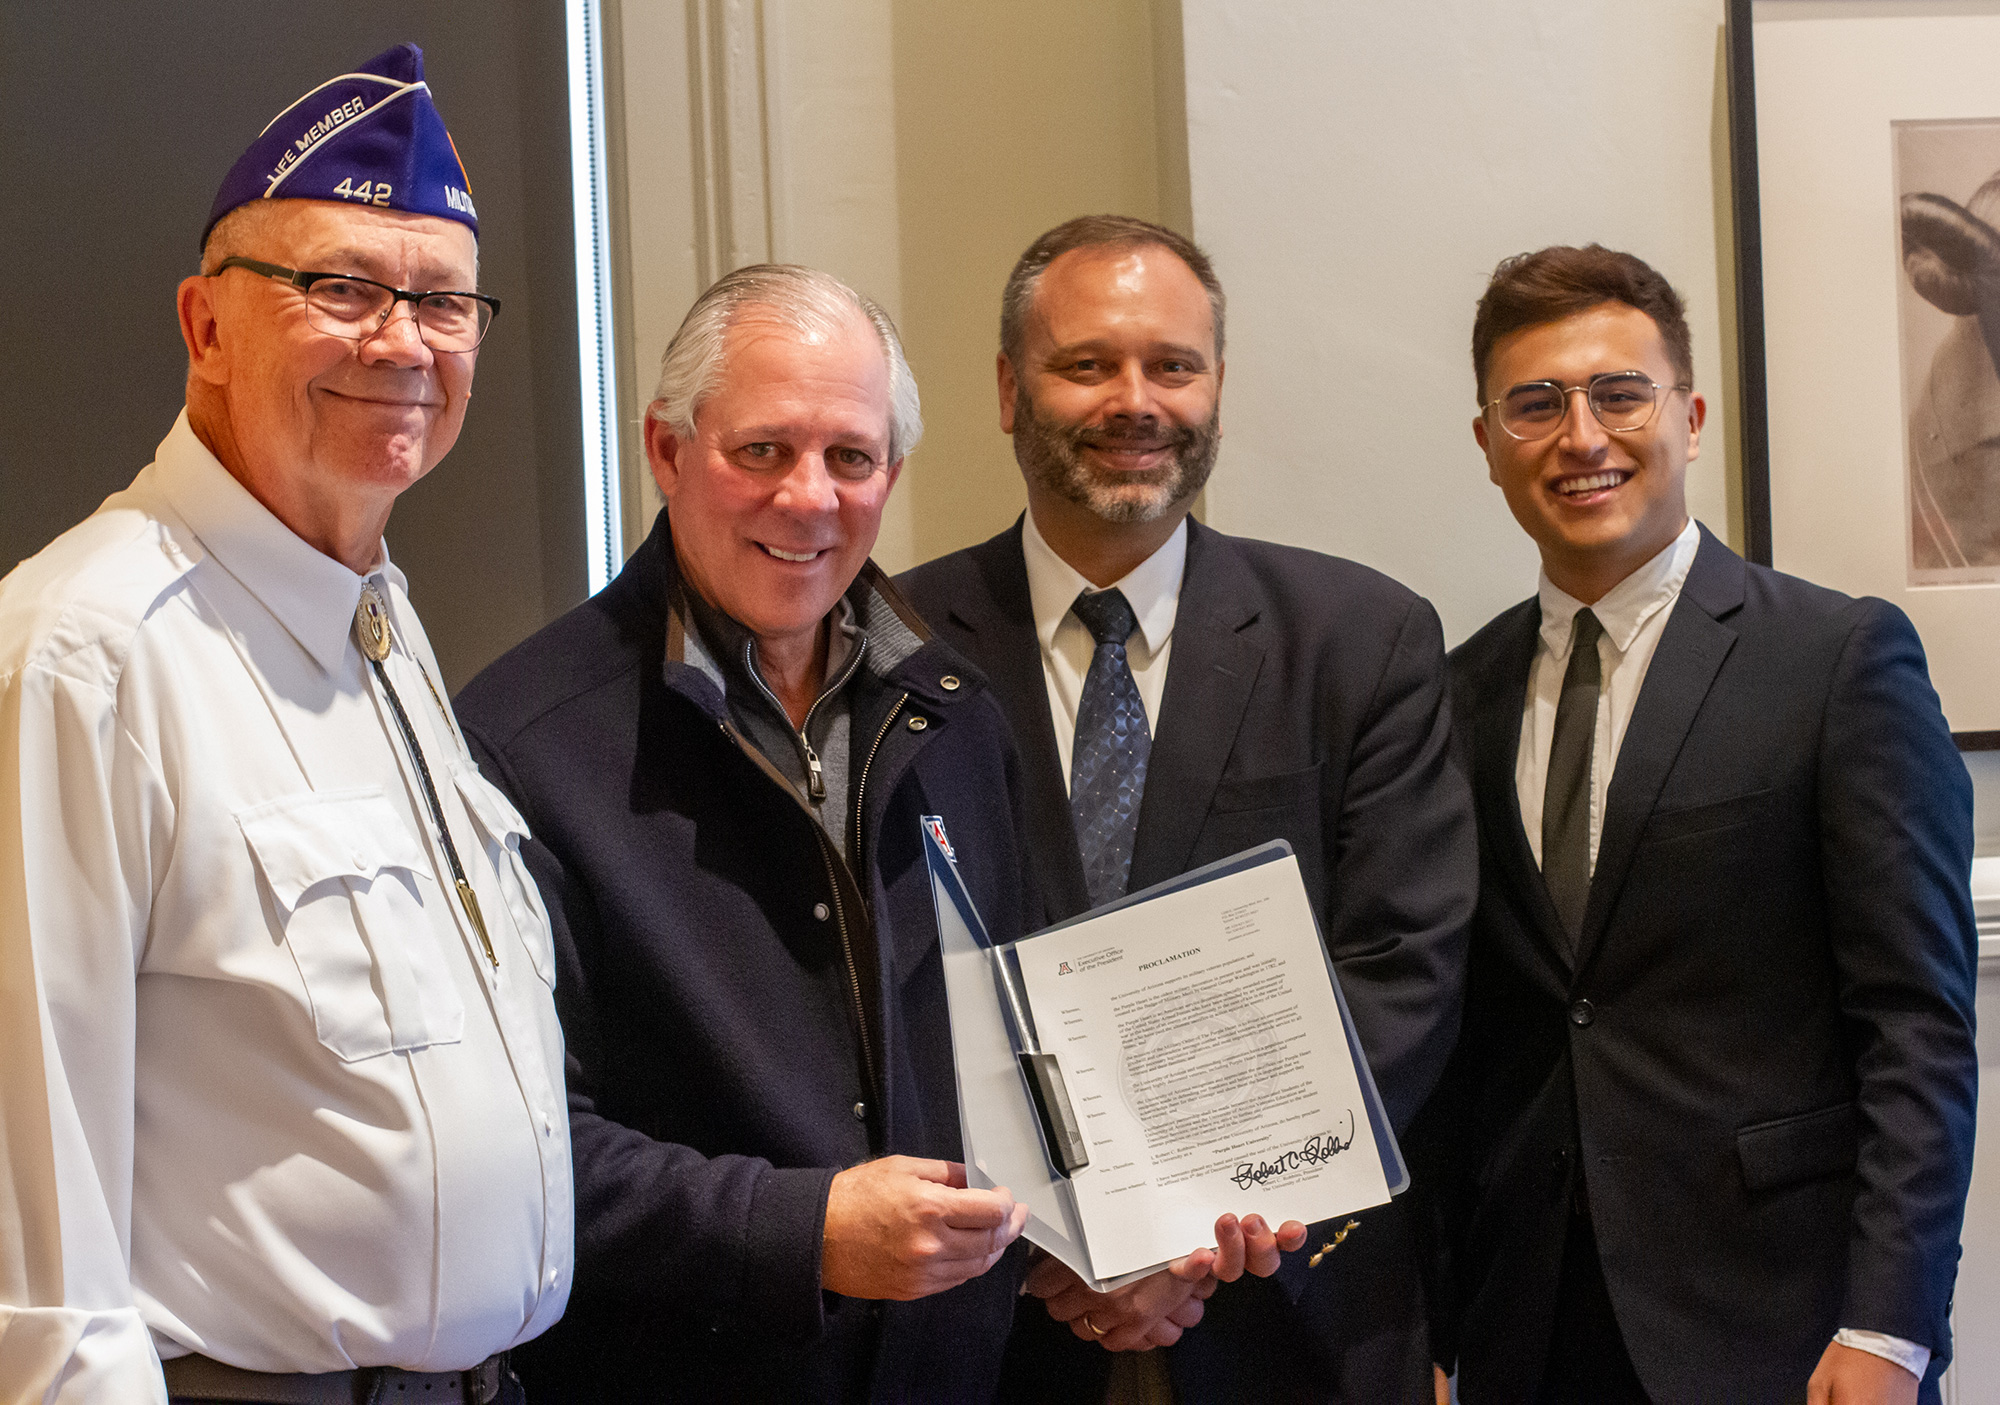 From left: Military Order of the Purple Heart Chapter 442 Commander Michael Dyer; Univerity of Arizona President Robert C. Robbins; Assistant Dean of Students Military and Veteran Engagement, Cody Nicholls; ASUA Student Body Senator Rocque Perez